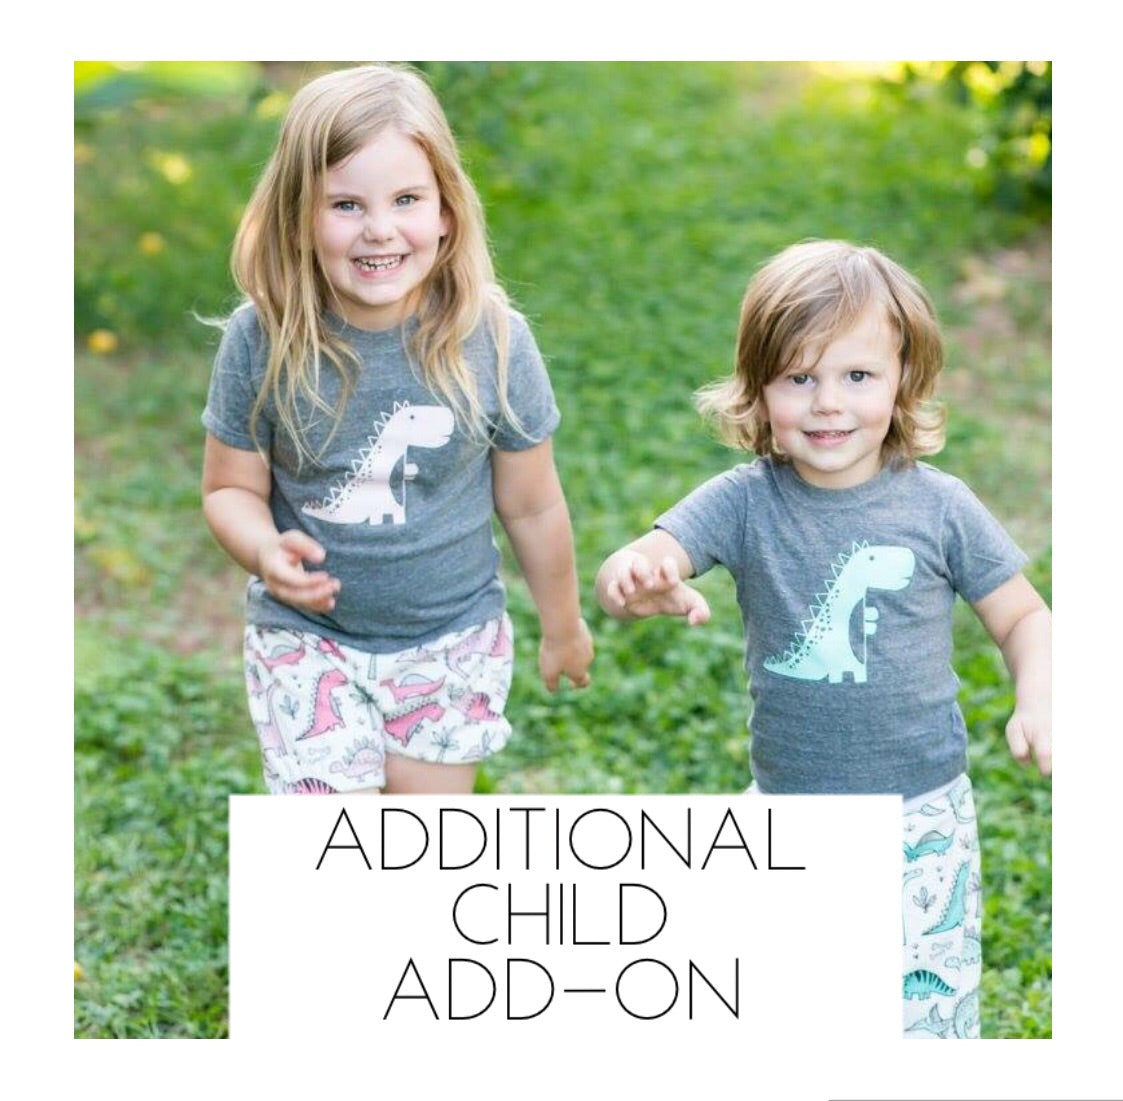 Additional Child ADD-ON Photo Shoot - August 18